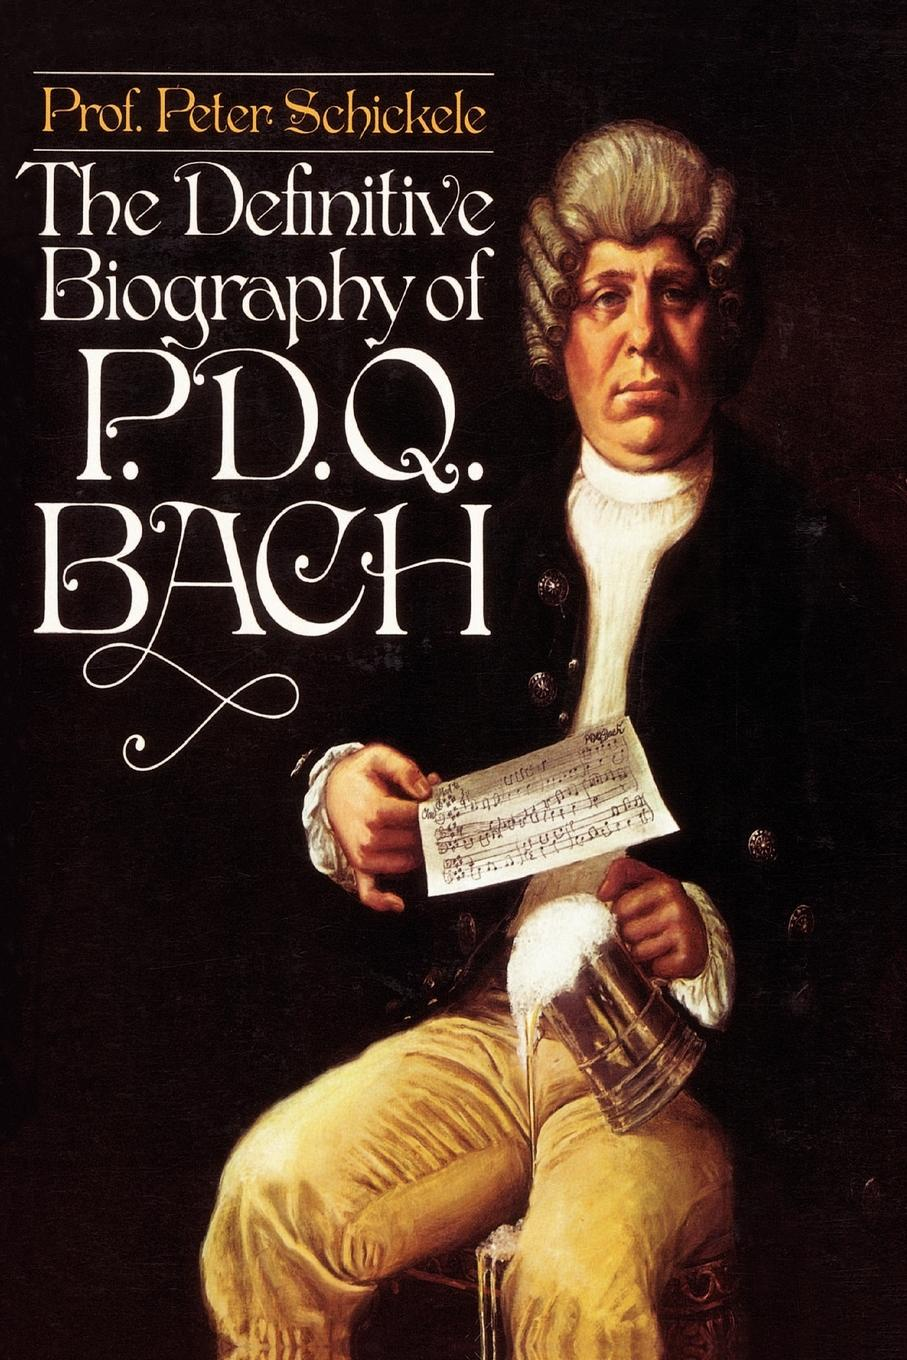 Peter Composer Schickele Definitive Biography of P.D.Q. Bach peter composer schickele definitive biography of p d q bach